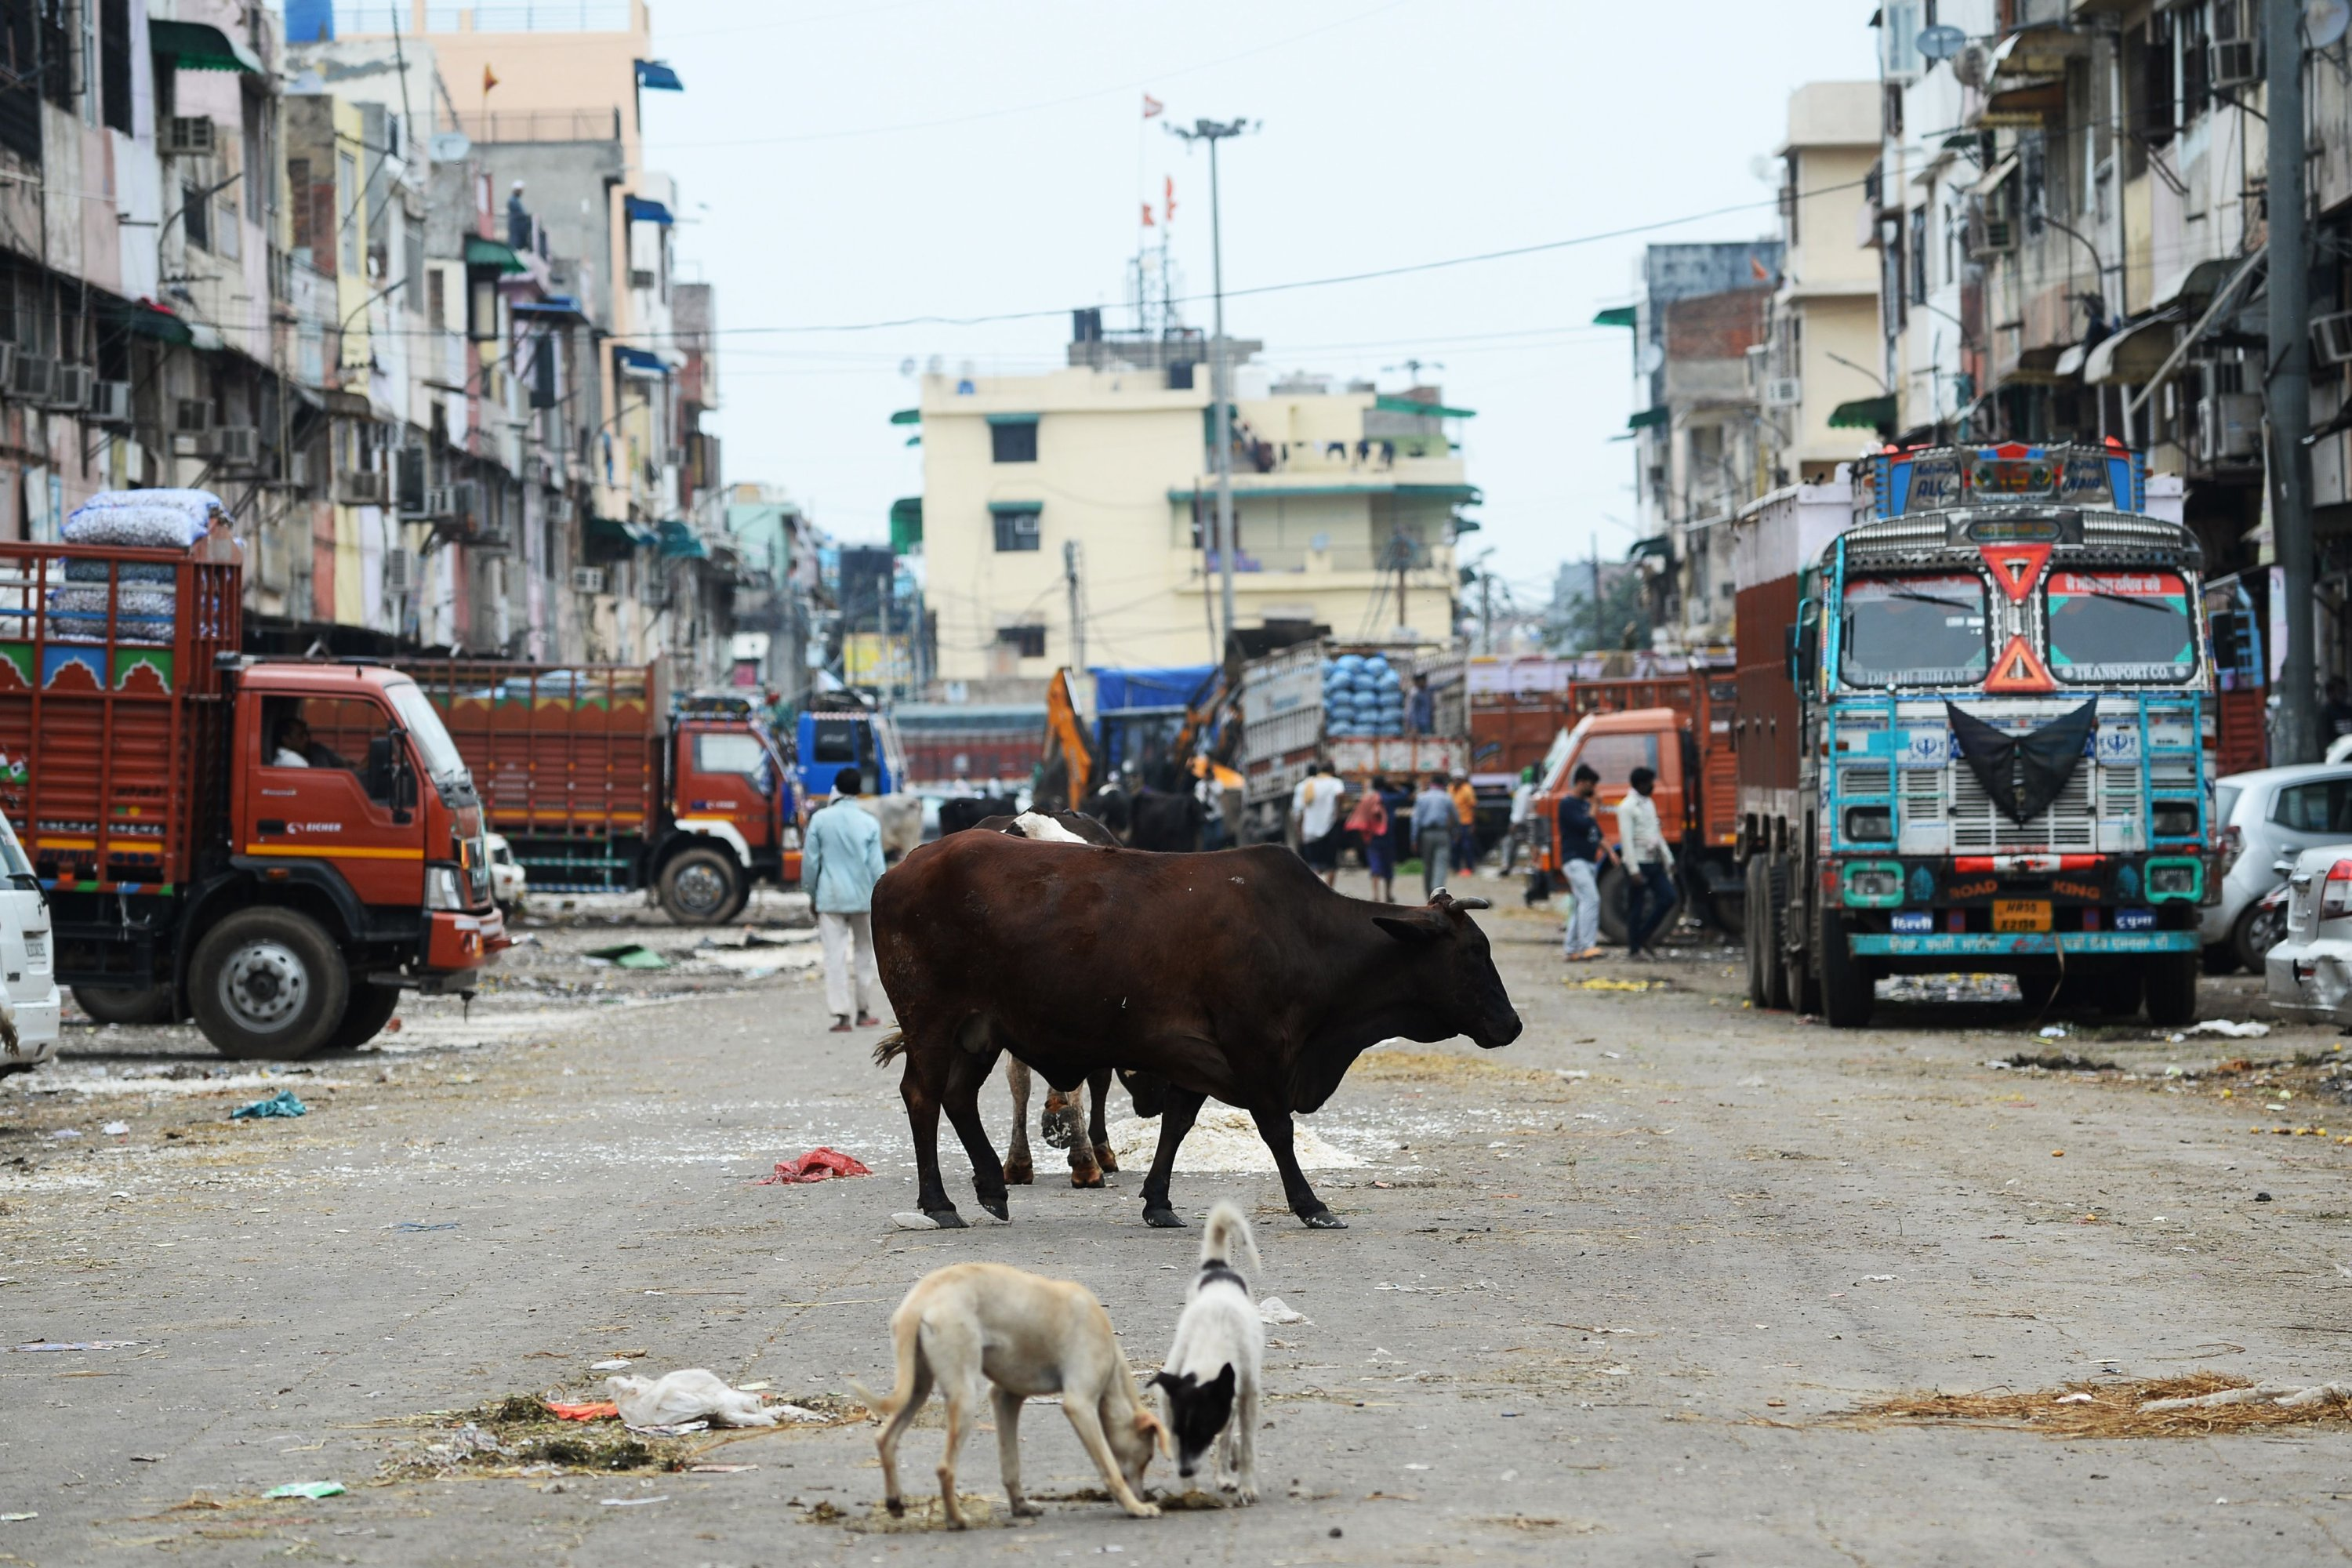 A cow and stray dogs stand along a deserted street during lockdown in New Delhi, India, March 26, 2020. (AFP Photo)